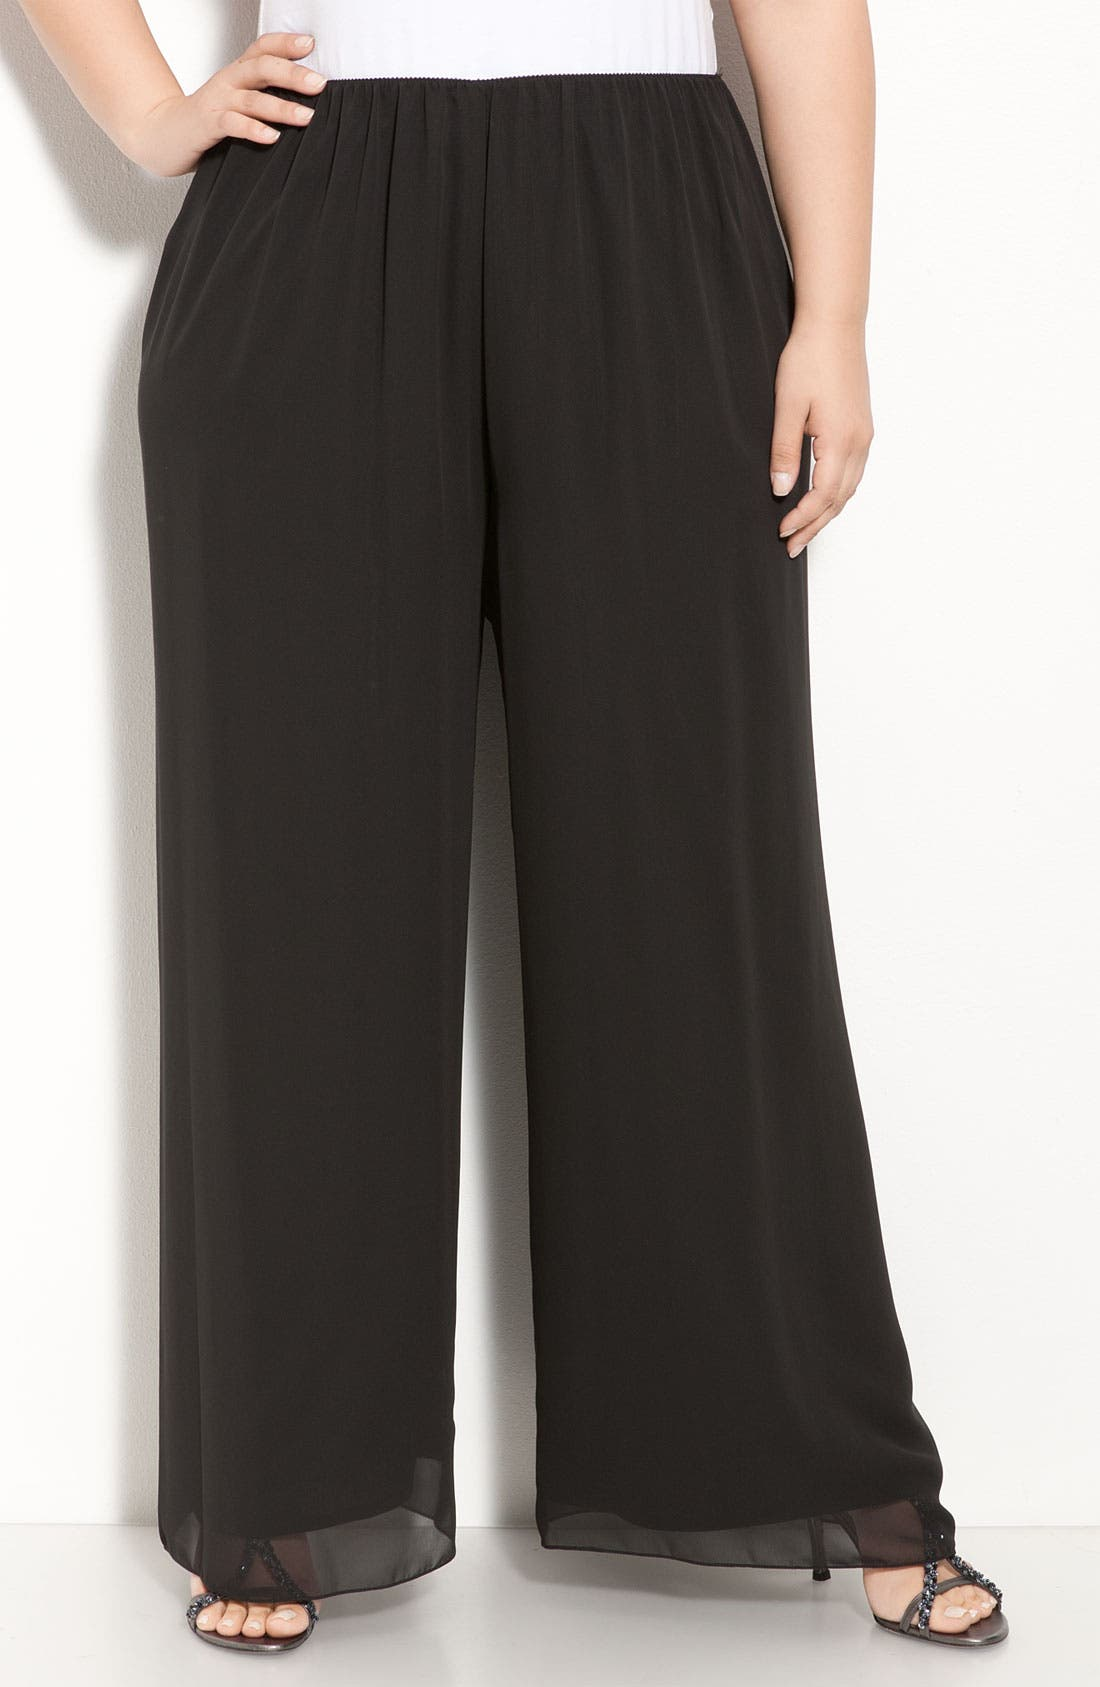 Alternate Image 1 Selected - Alex Evenings Chiffon Palazzo Pants (Plus Size)